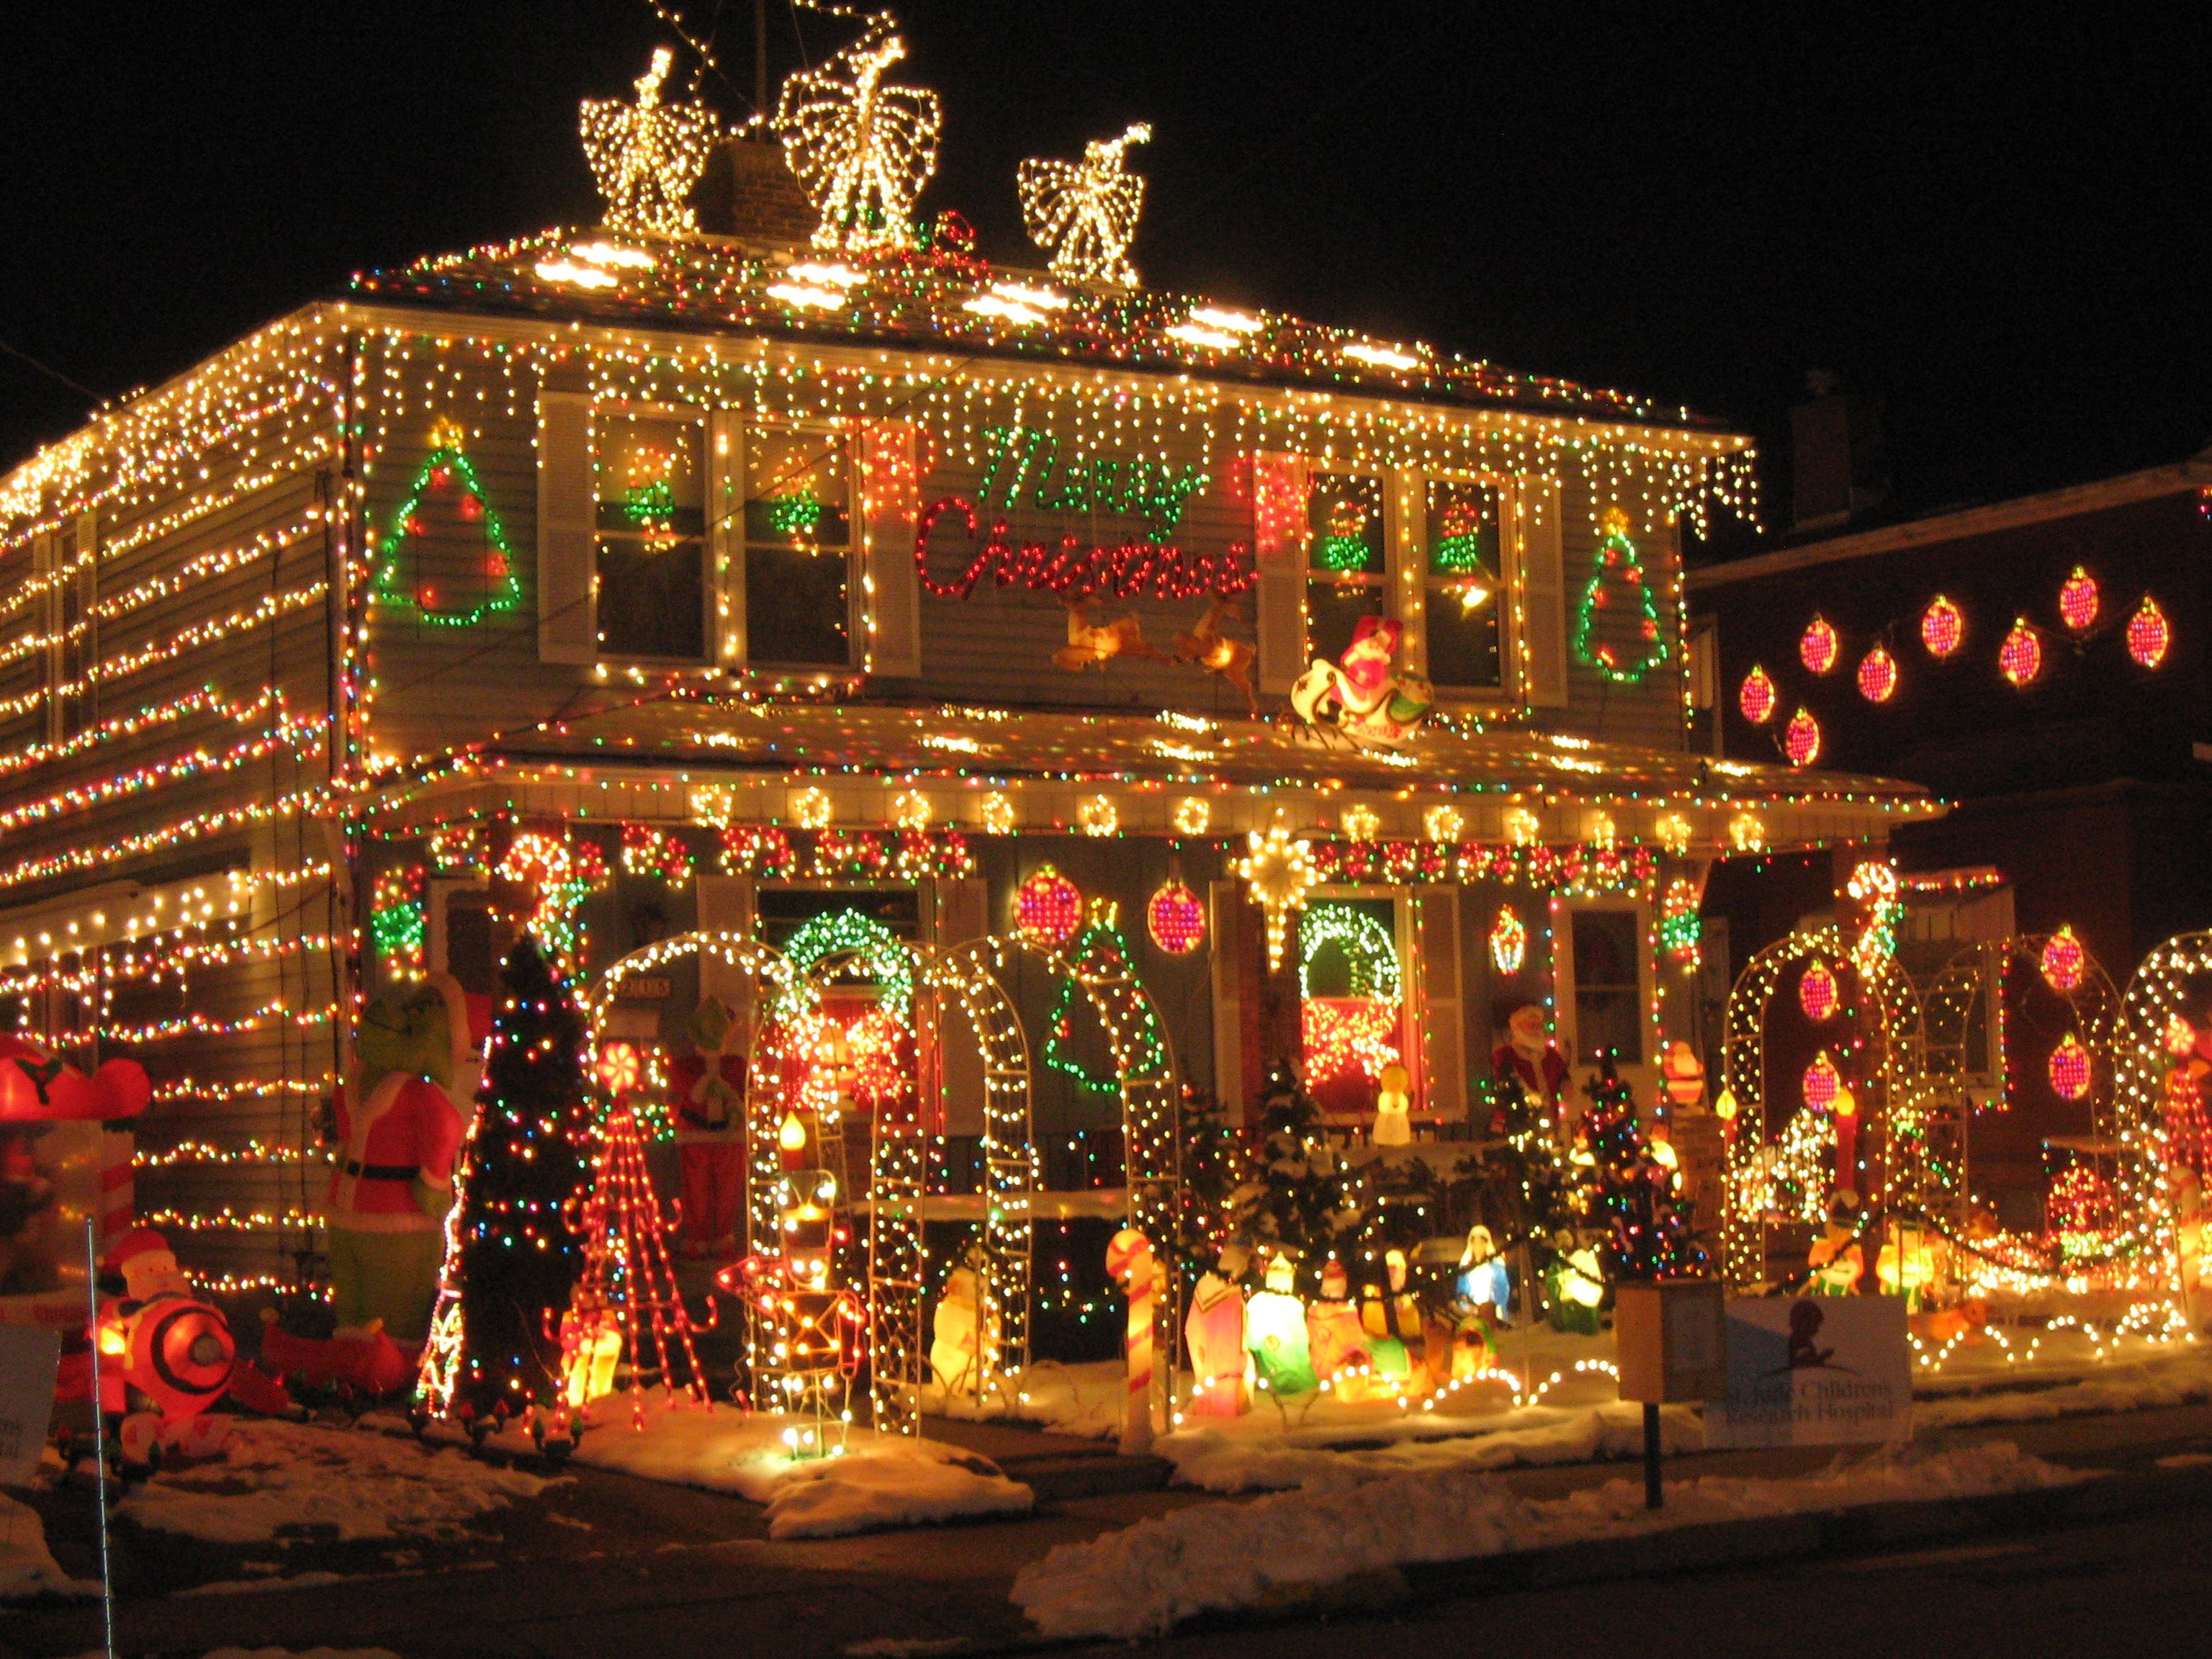 House With Christmas Lights.Lights House With Christmas Lights To Music Christmas